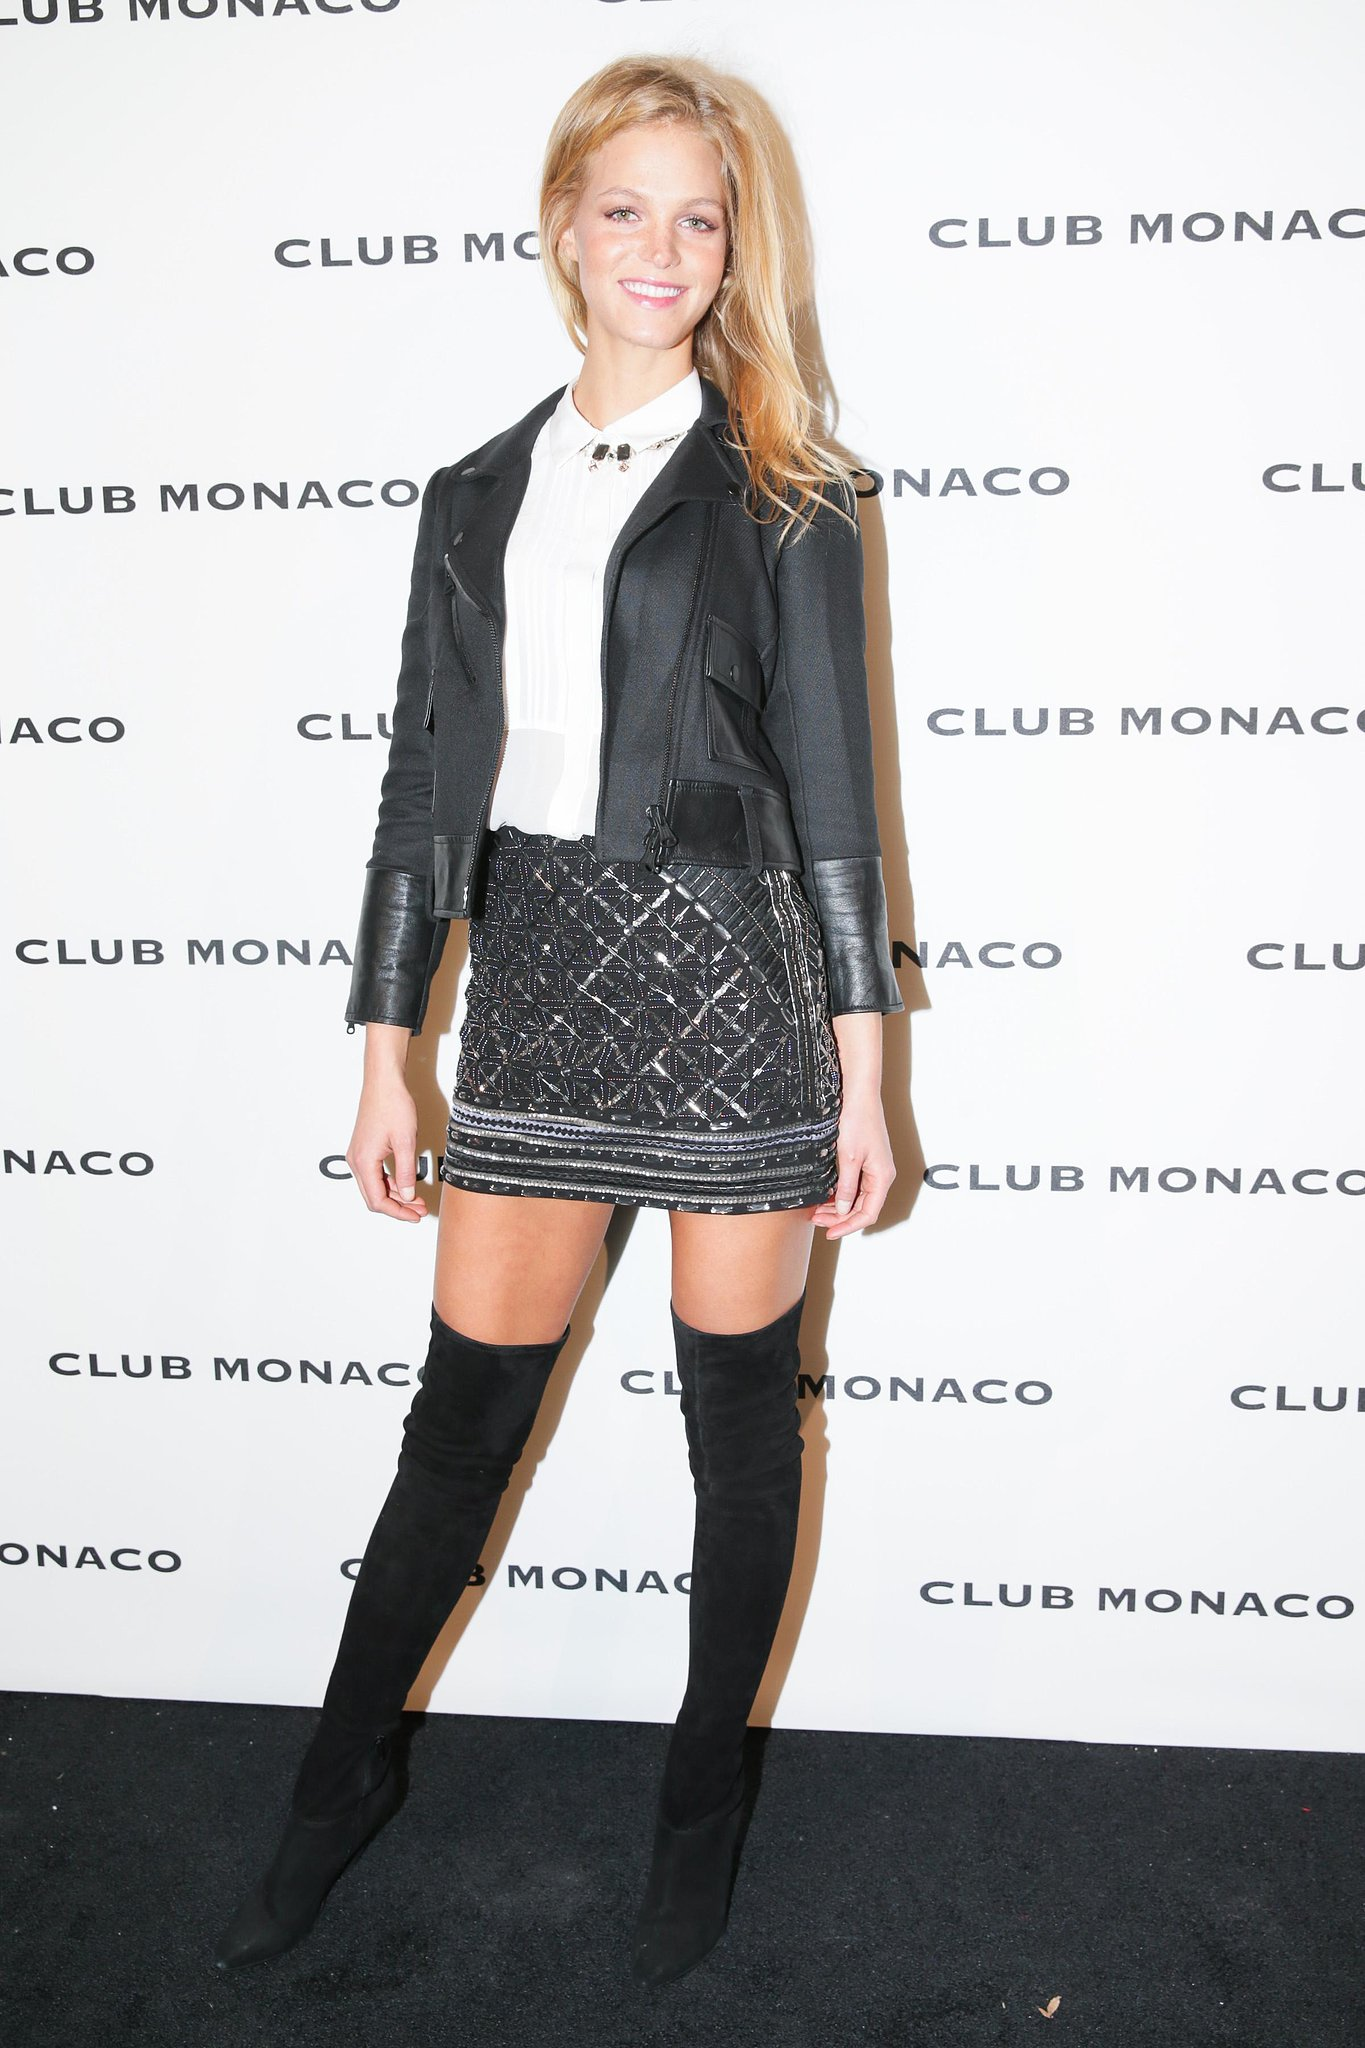 Erin Heatherton helped reopen the Fifth Avenue Club Monaco in a sparkling mini.